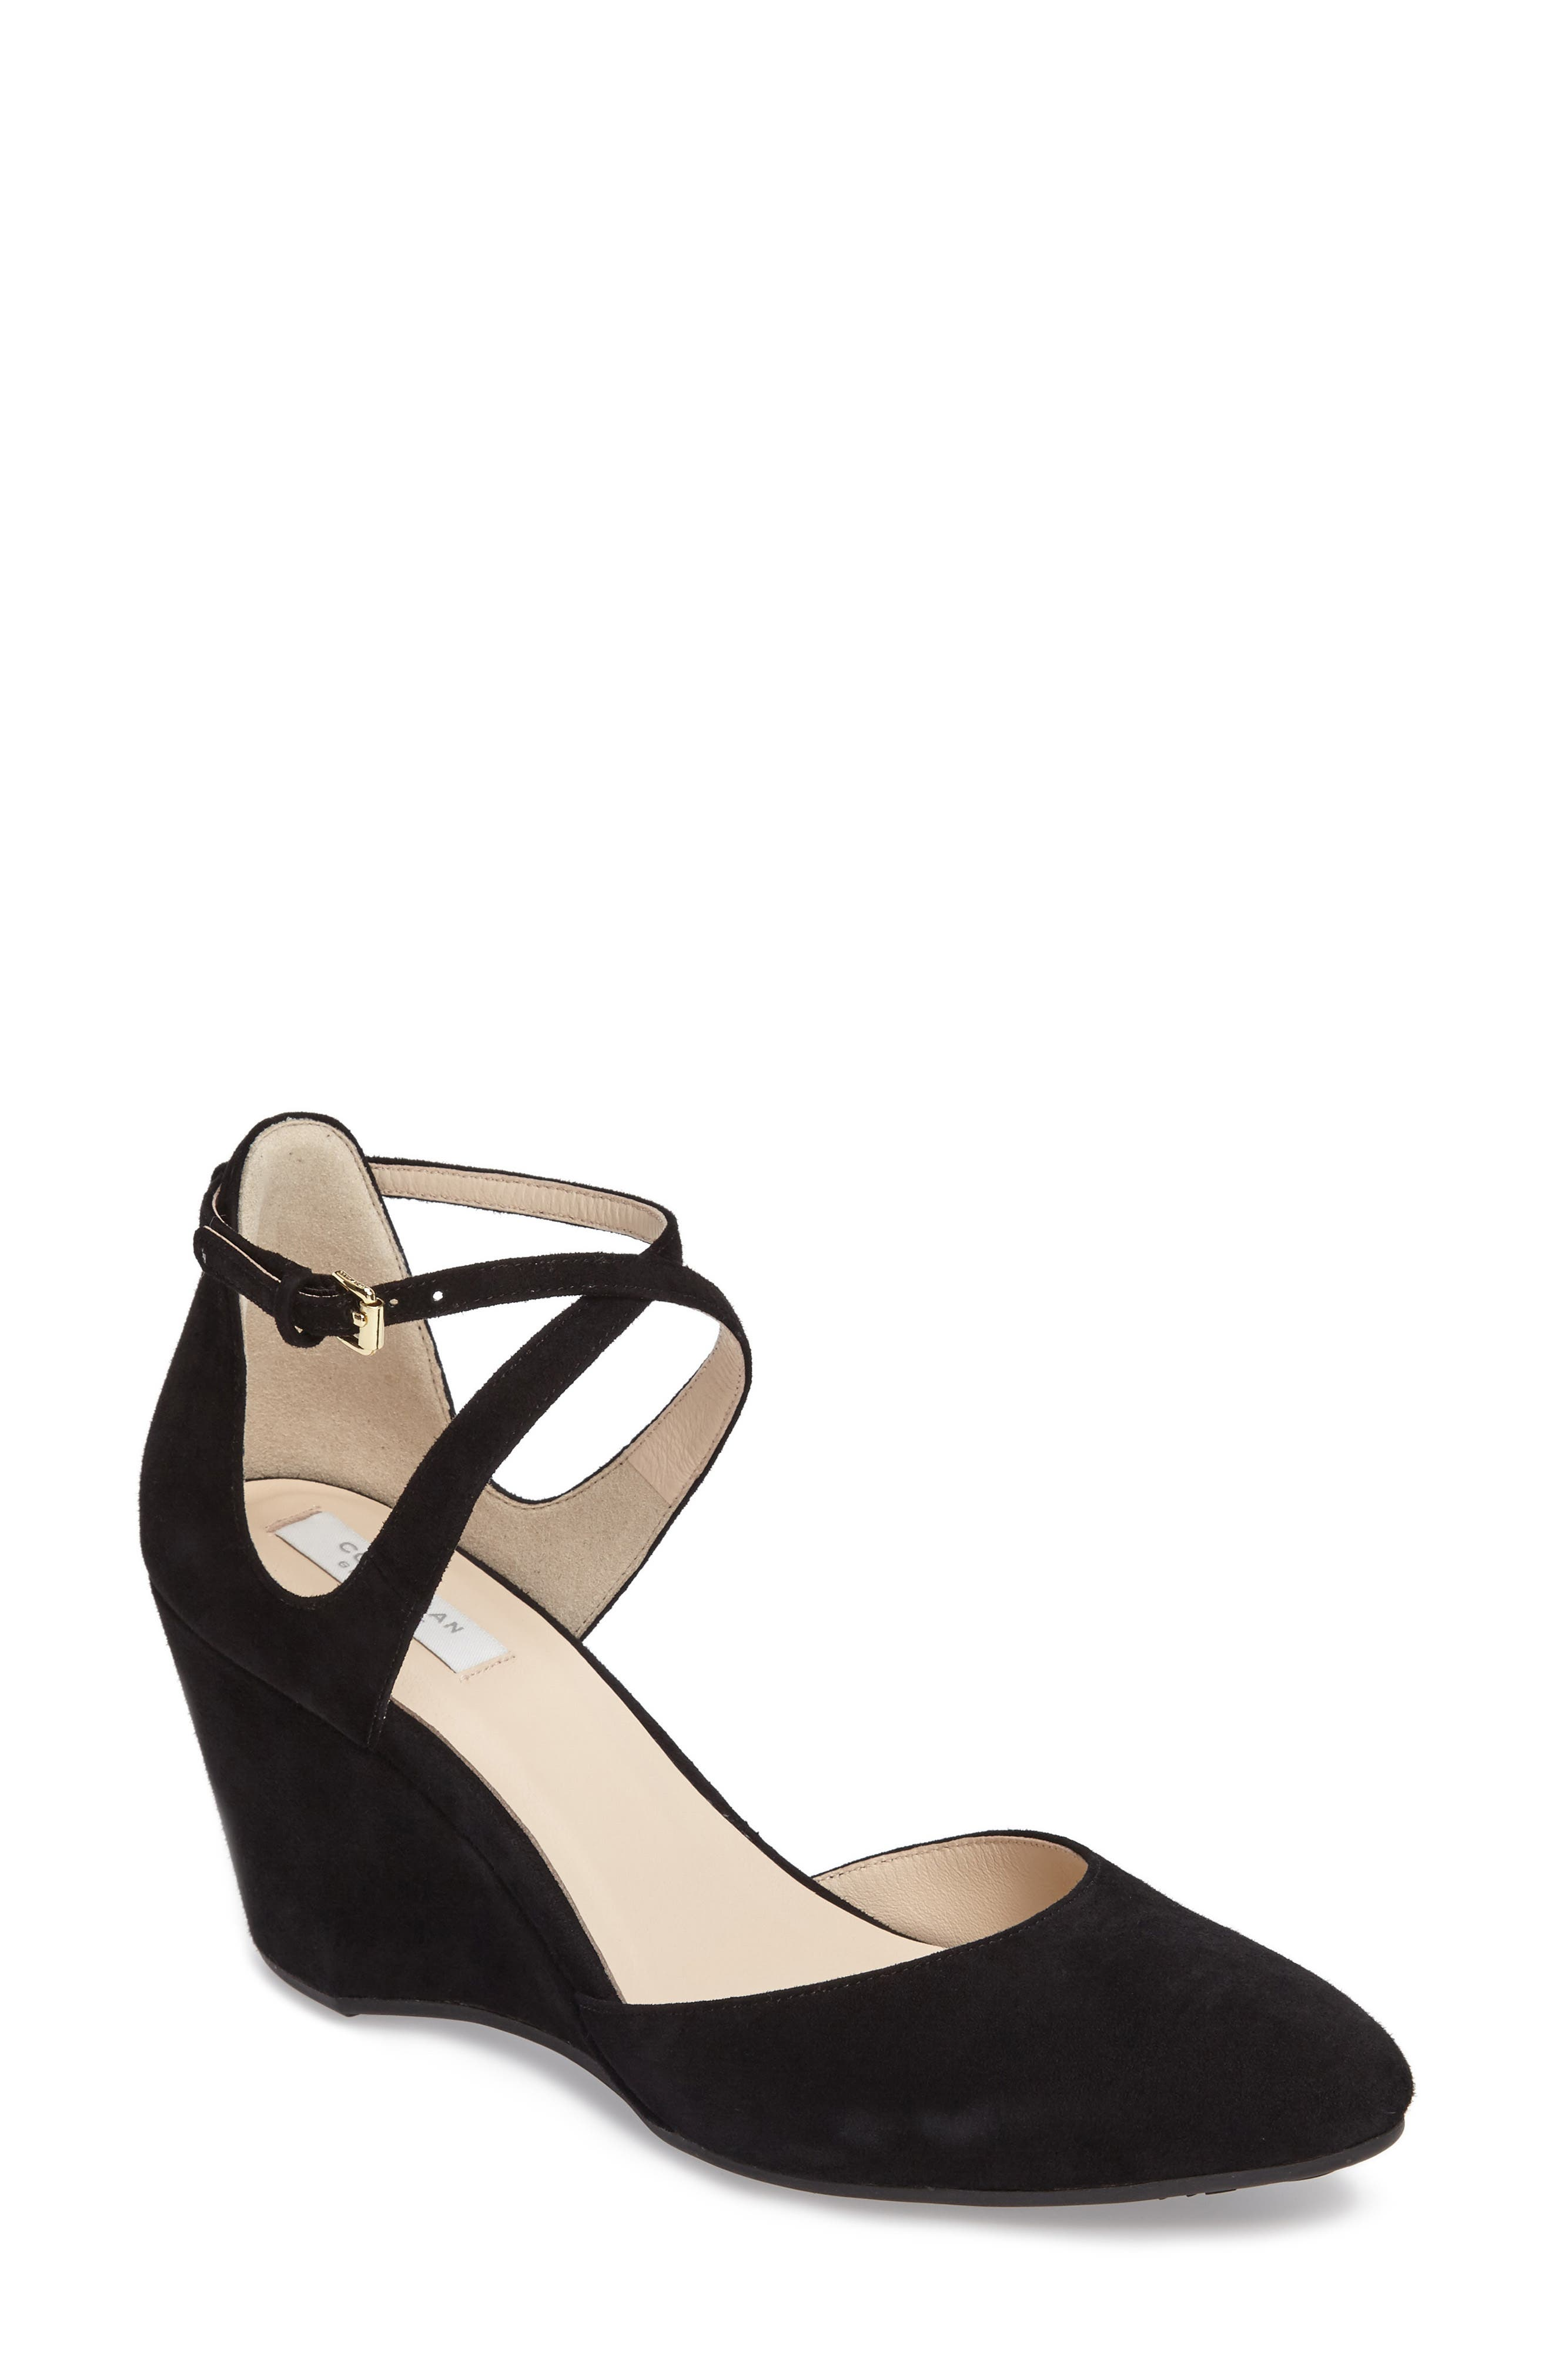 Lacey Ankle Strap Wedge Pump,                             Main thumbnail 1, color,                             001